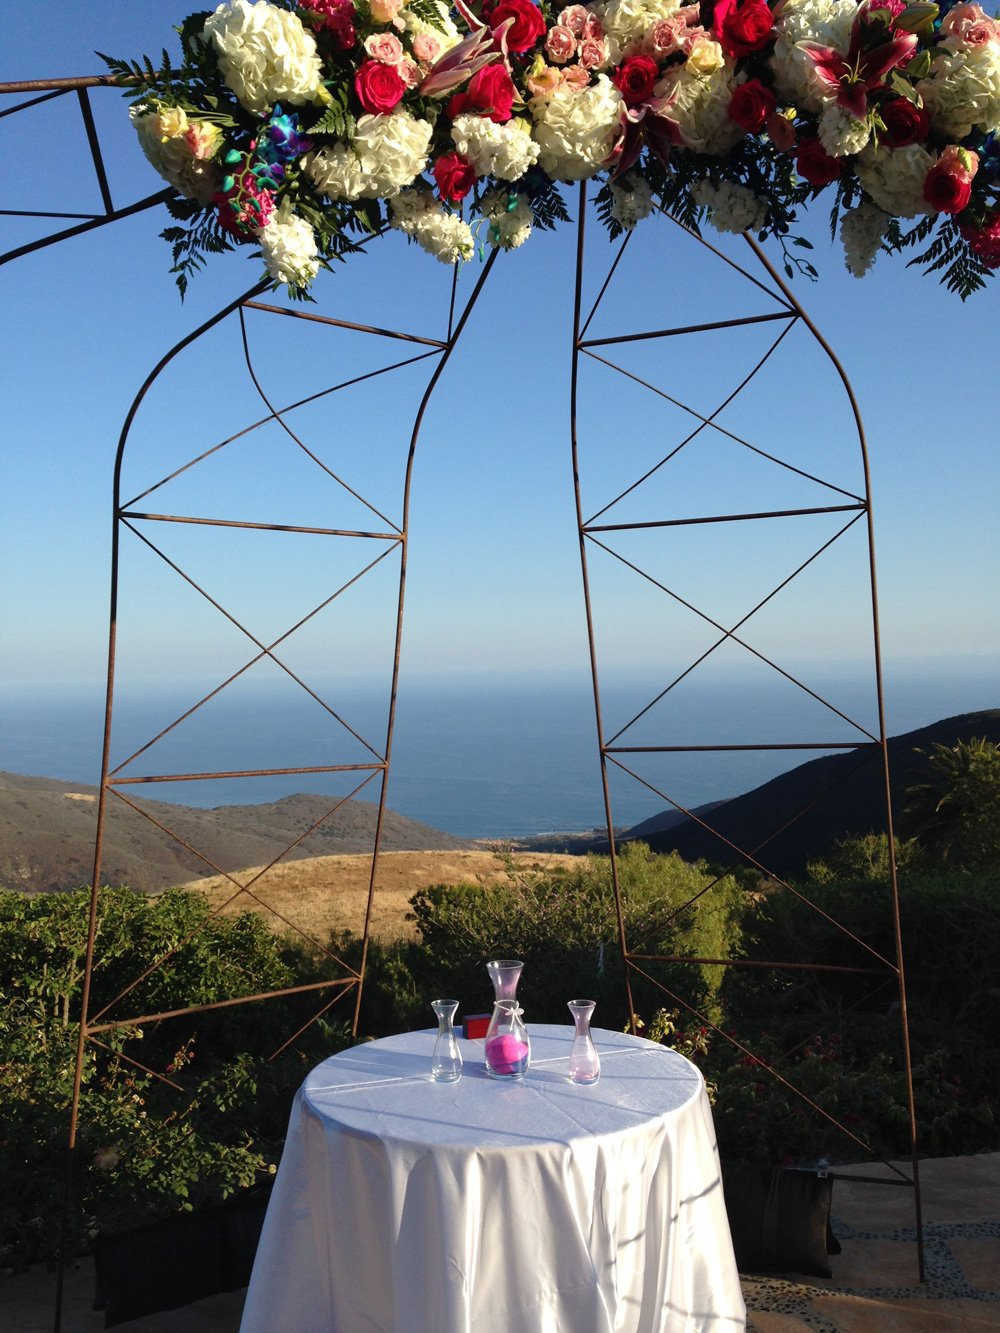 Wedding site for Nurpesh and Jenna, Rancho Sol Del Pacifico, Malibu